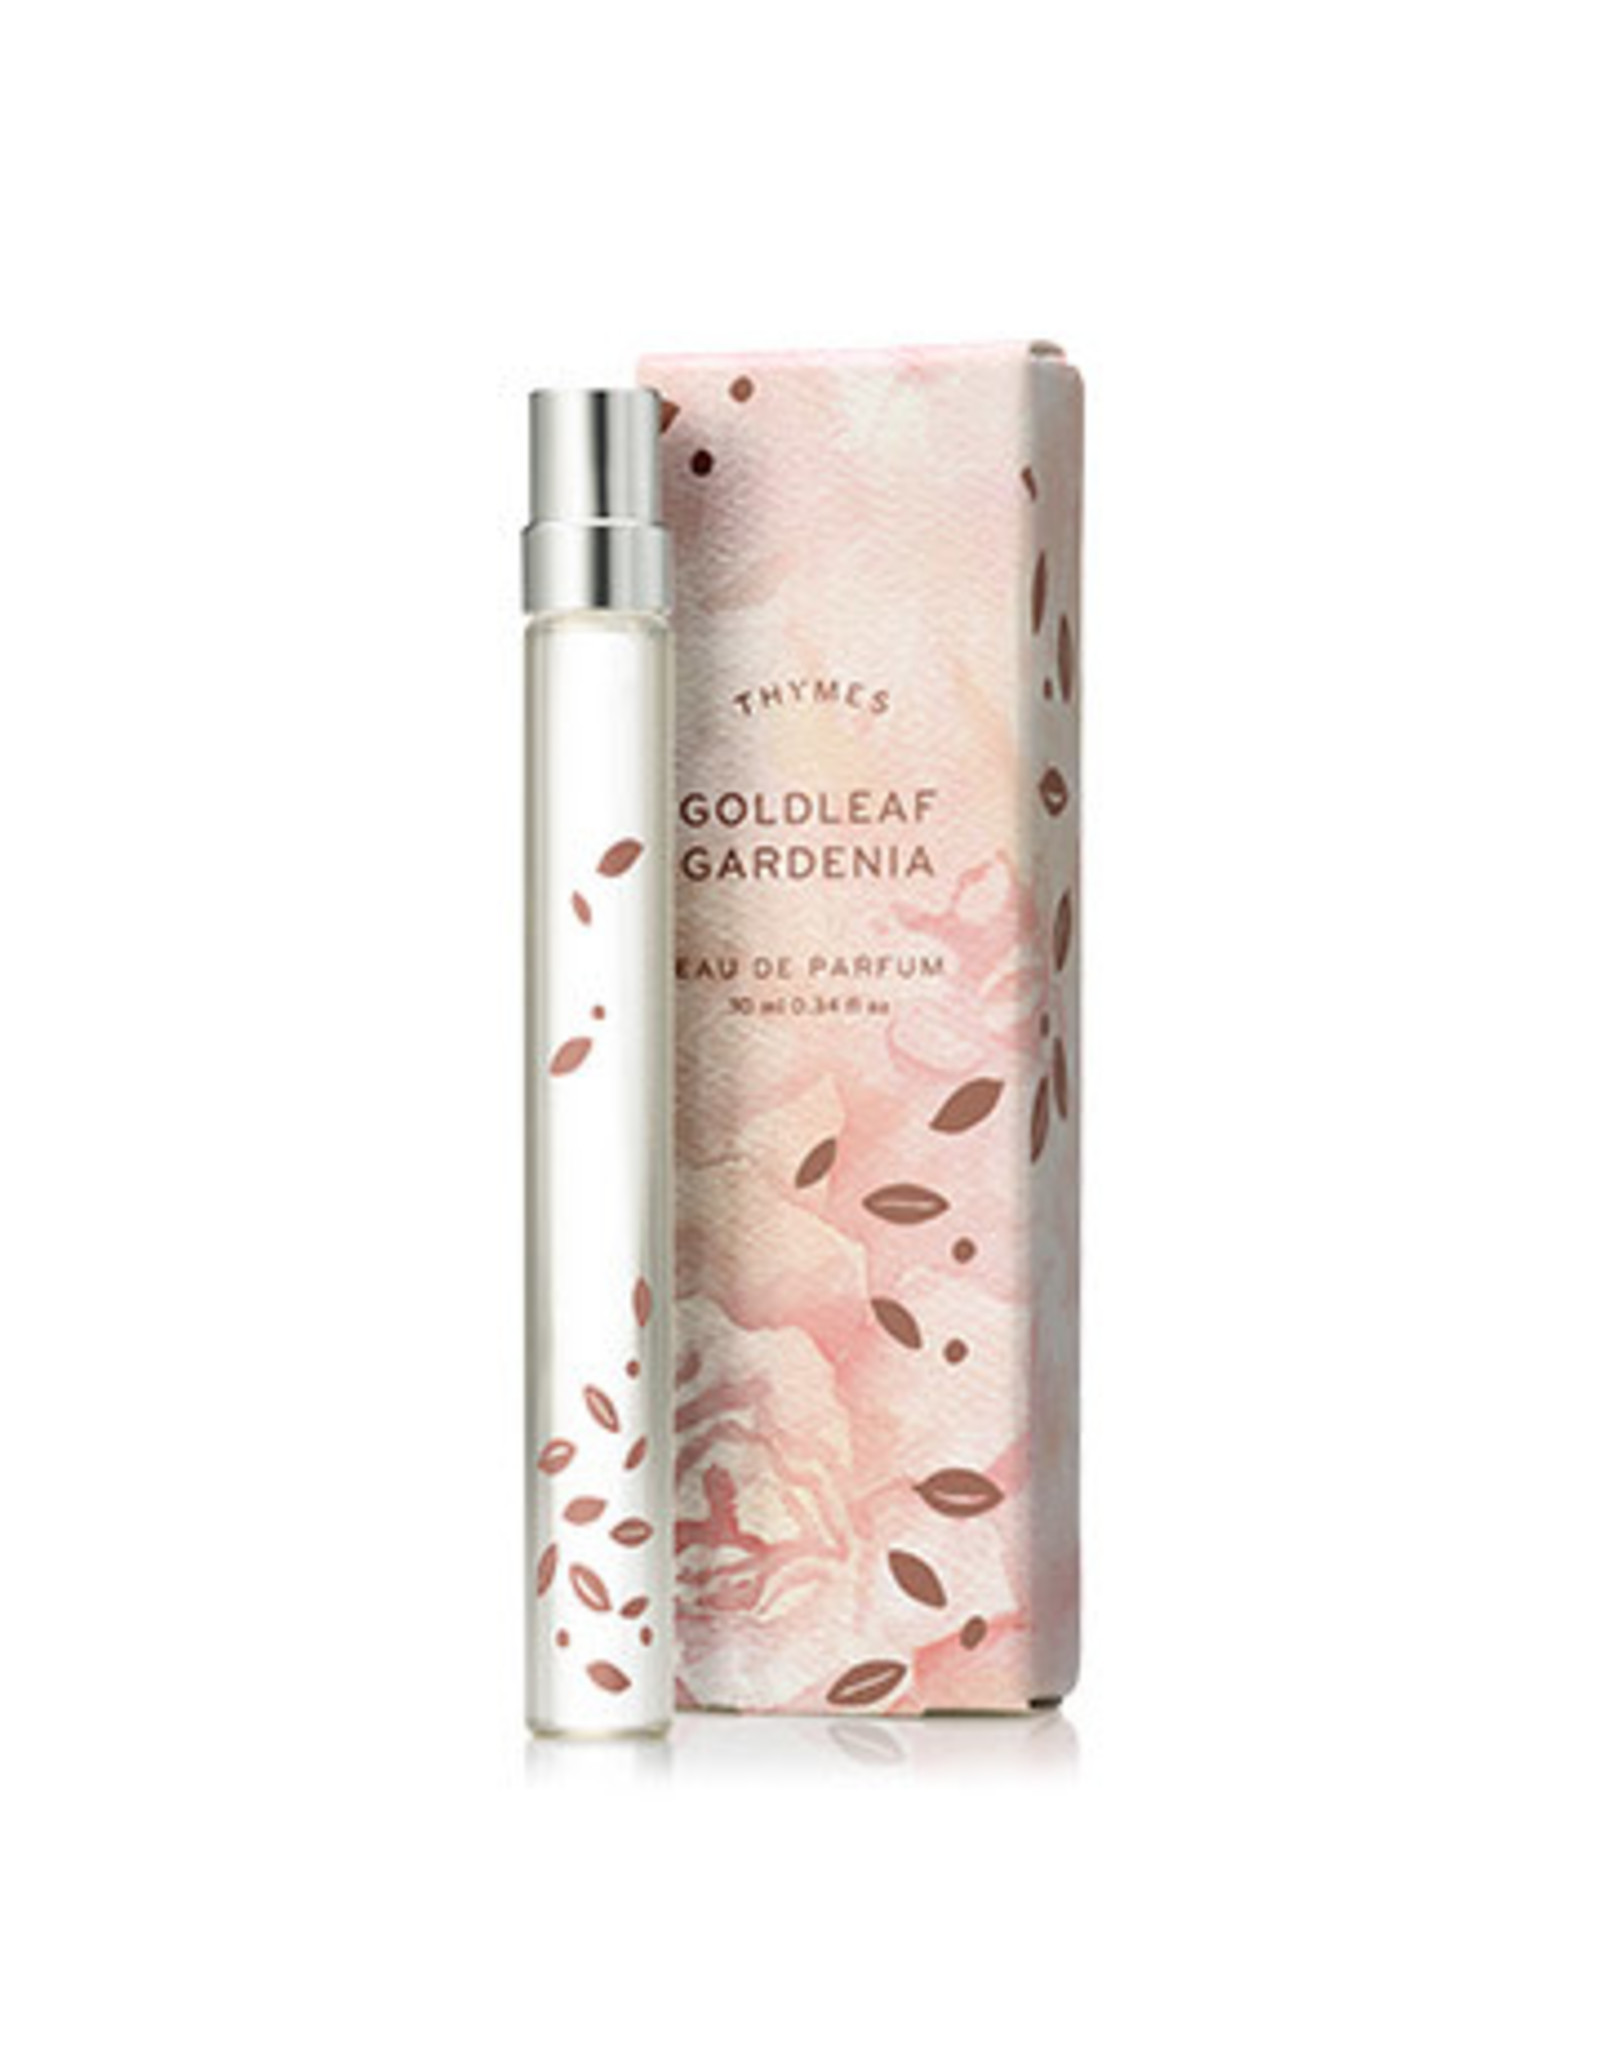 Thymes Goldleaf Gardenia Eau de Parfum Spray Pen